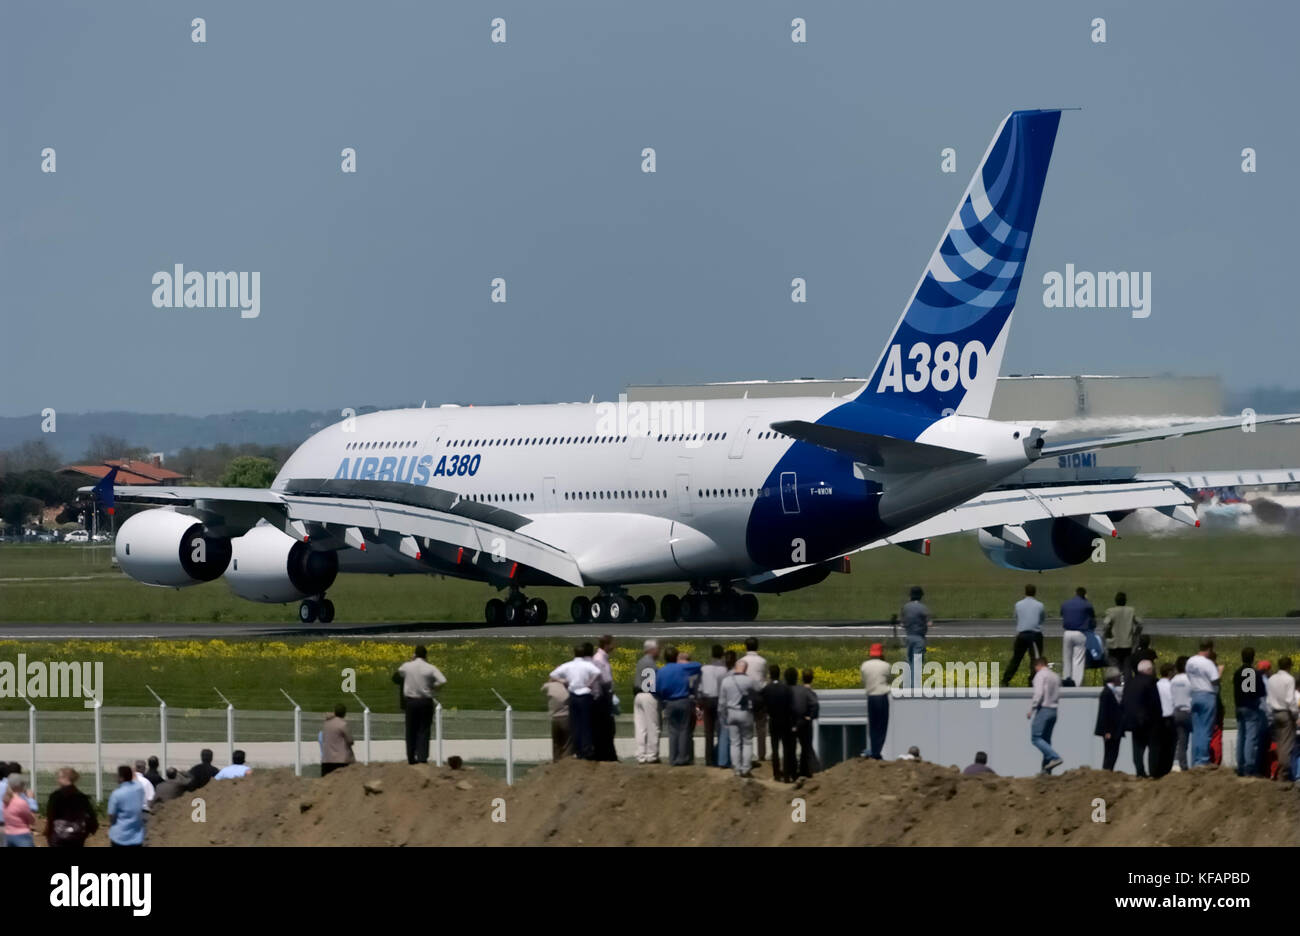 Two prototype Airbus A380 aircraft will soon be added to the exposition of French museums 66